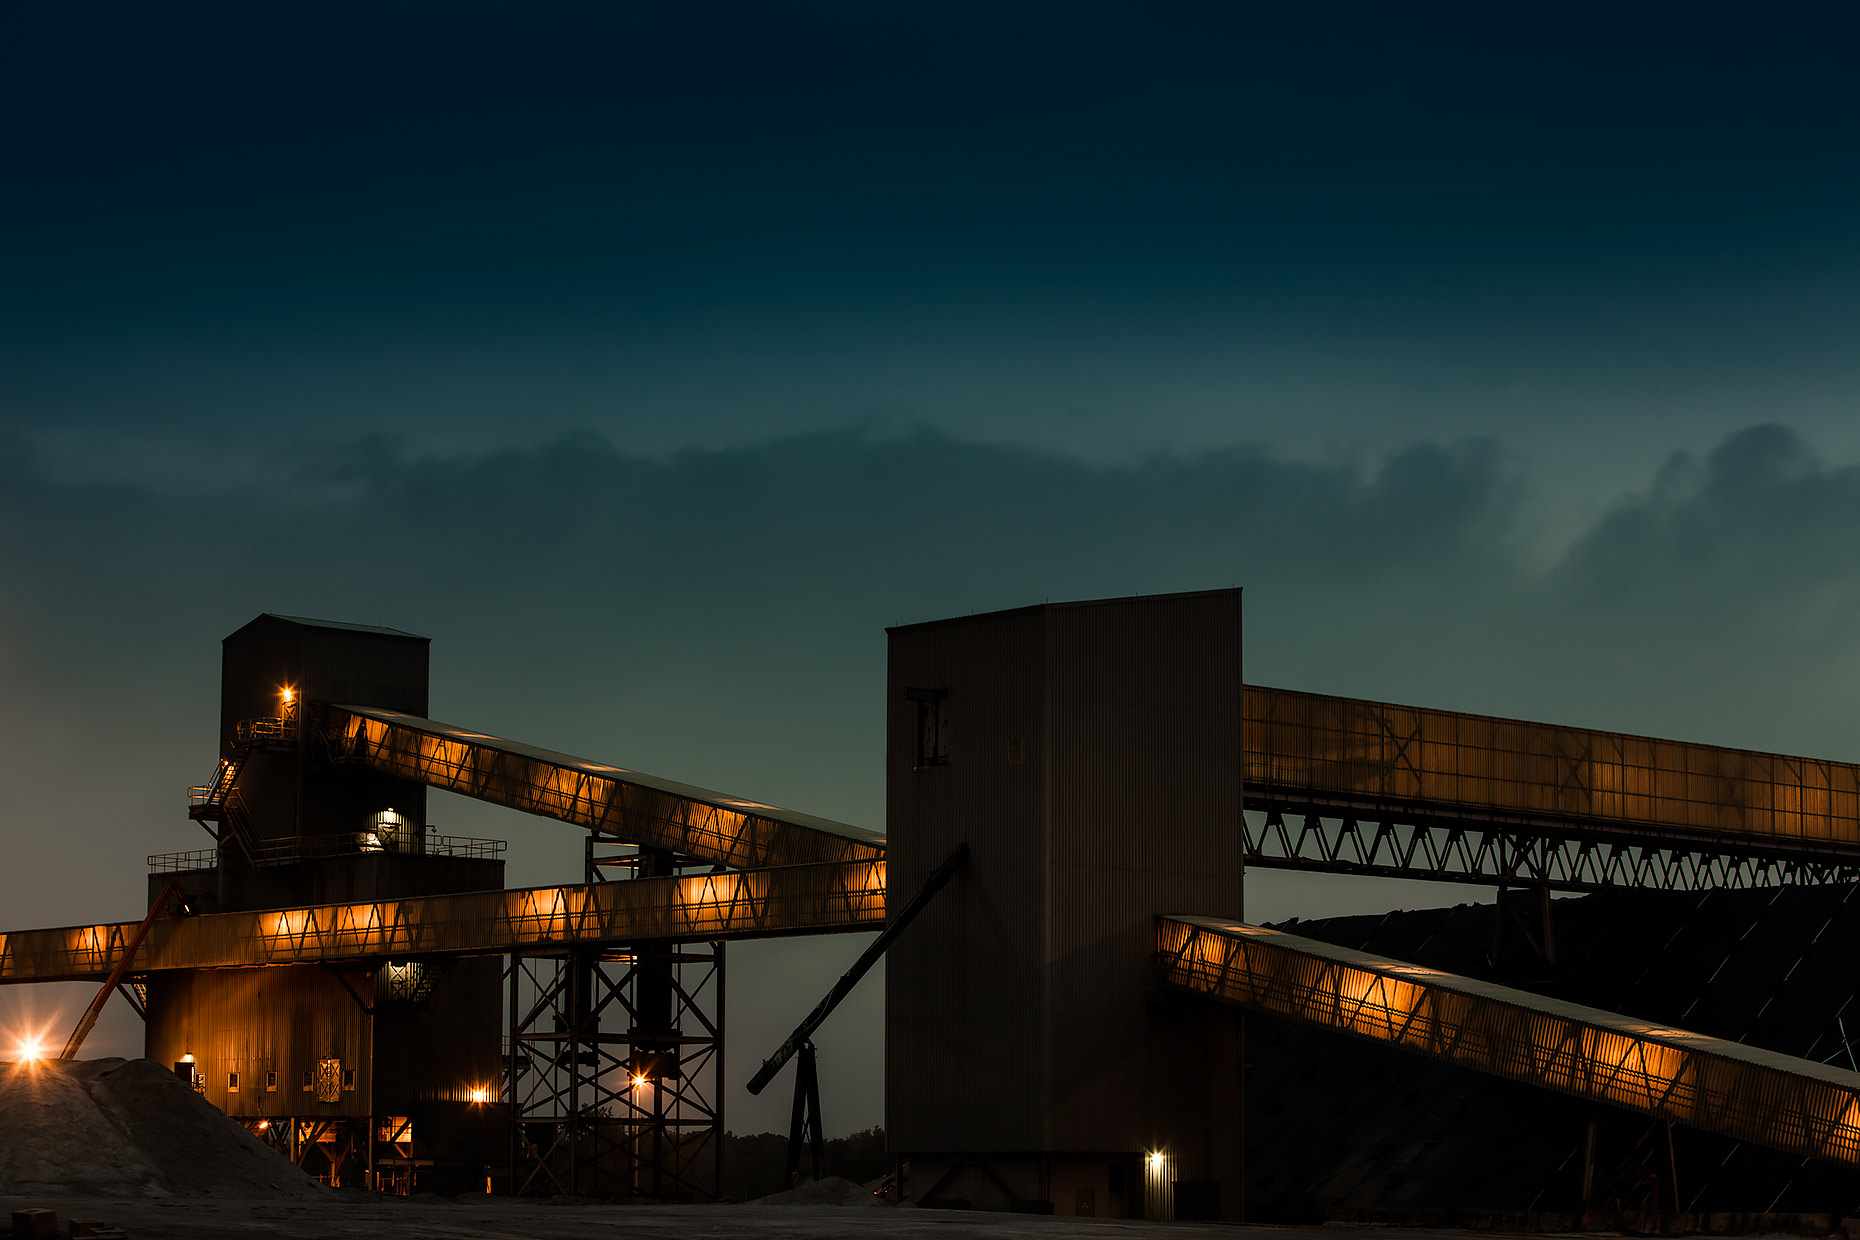 Salt refinery at night with chutes lit from within |  Scott Gable industrial photographer